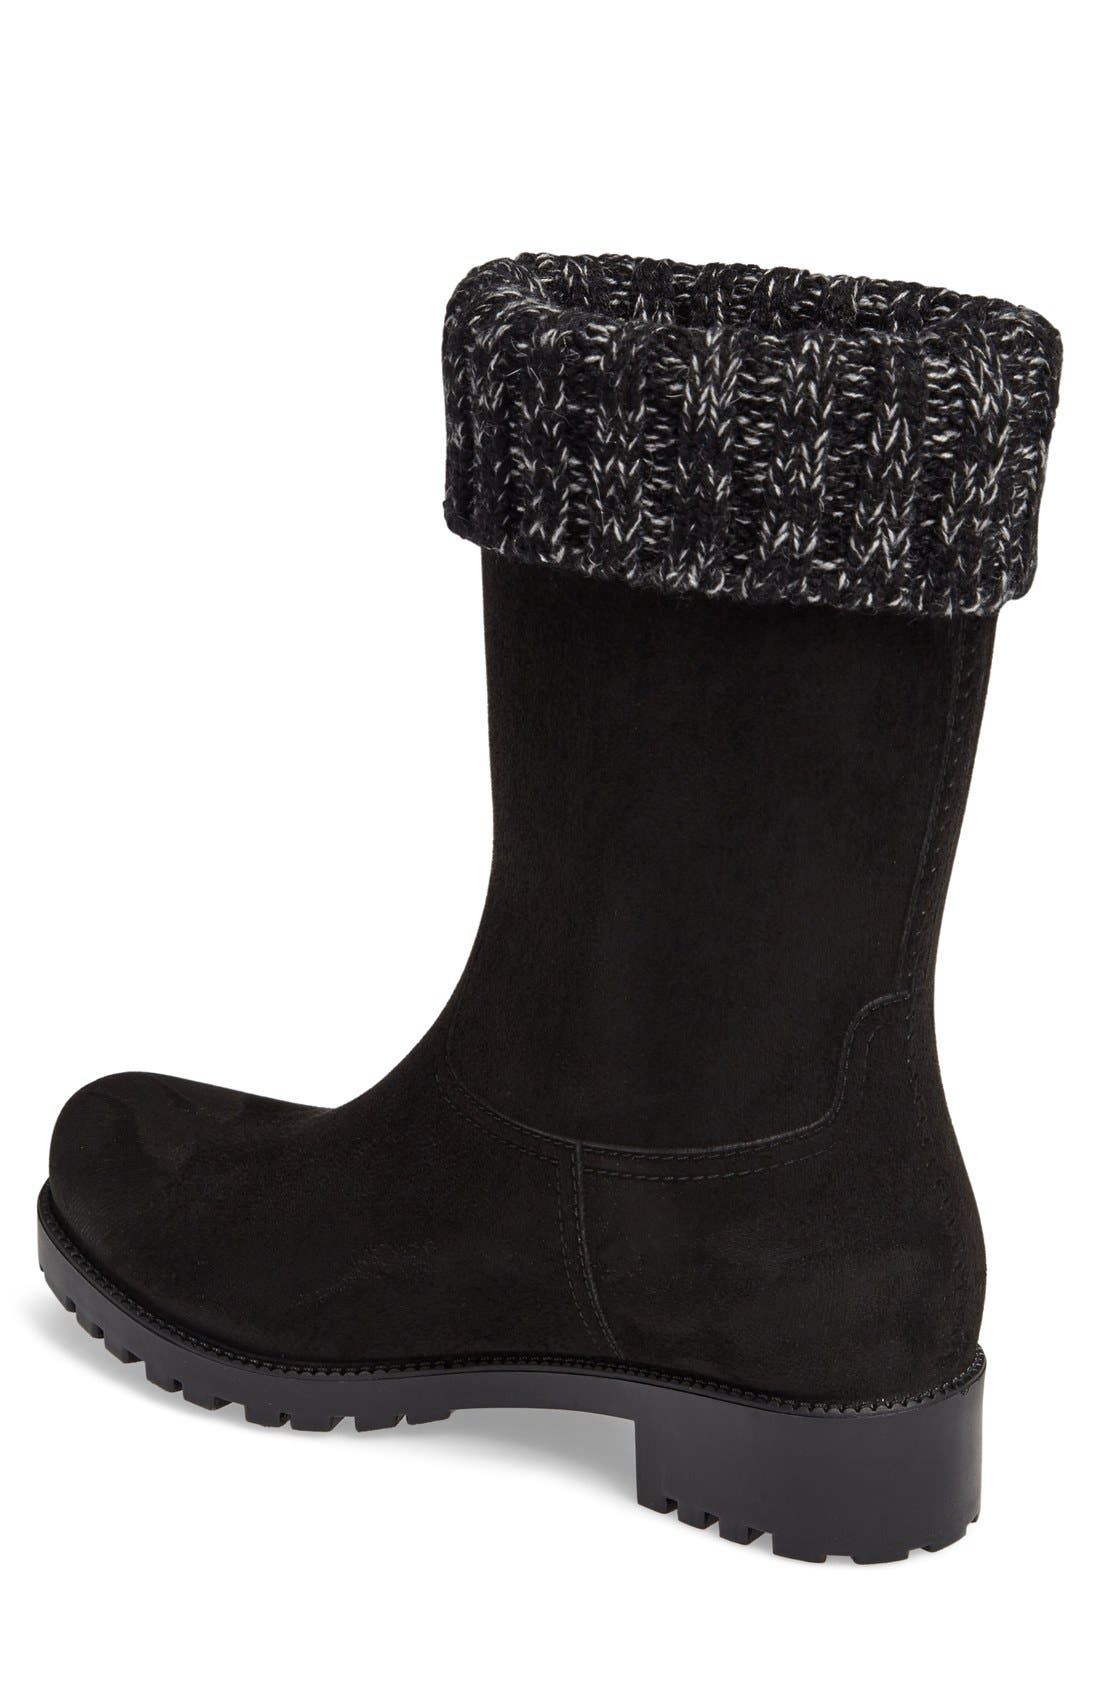 Shelby Knit Cuff Waterproof Boot,                             Alternate thumbnail 2, color,                             BLACK